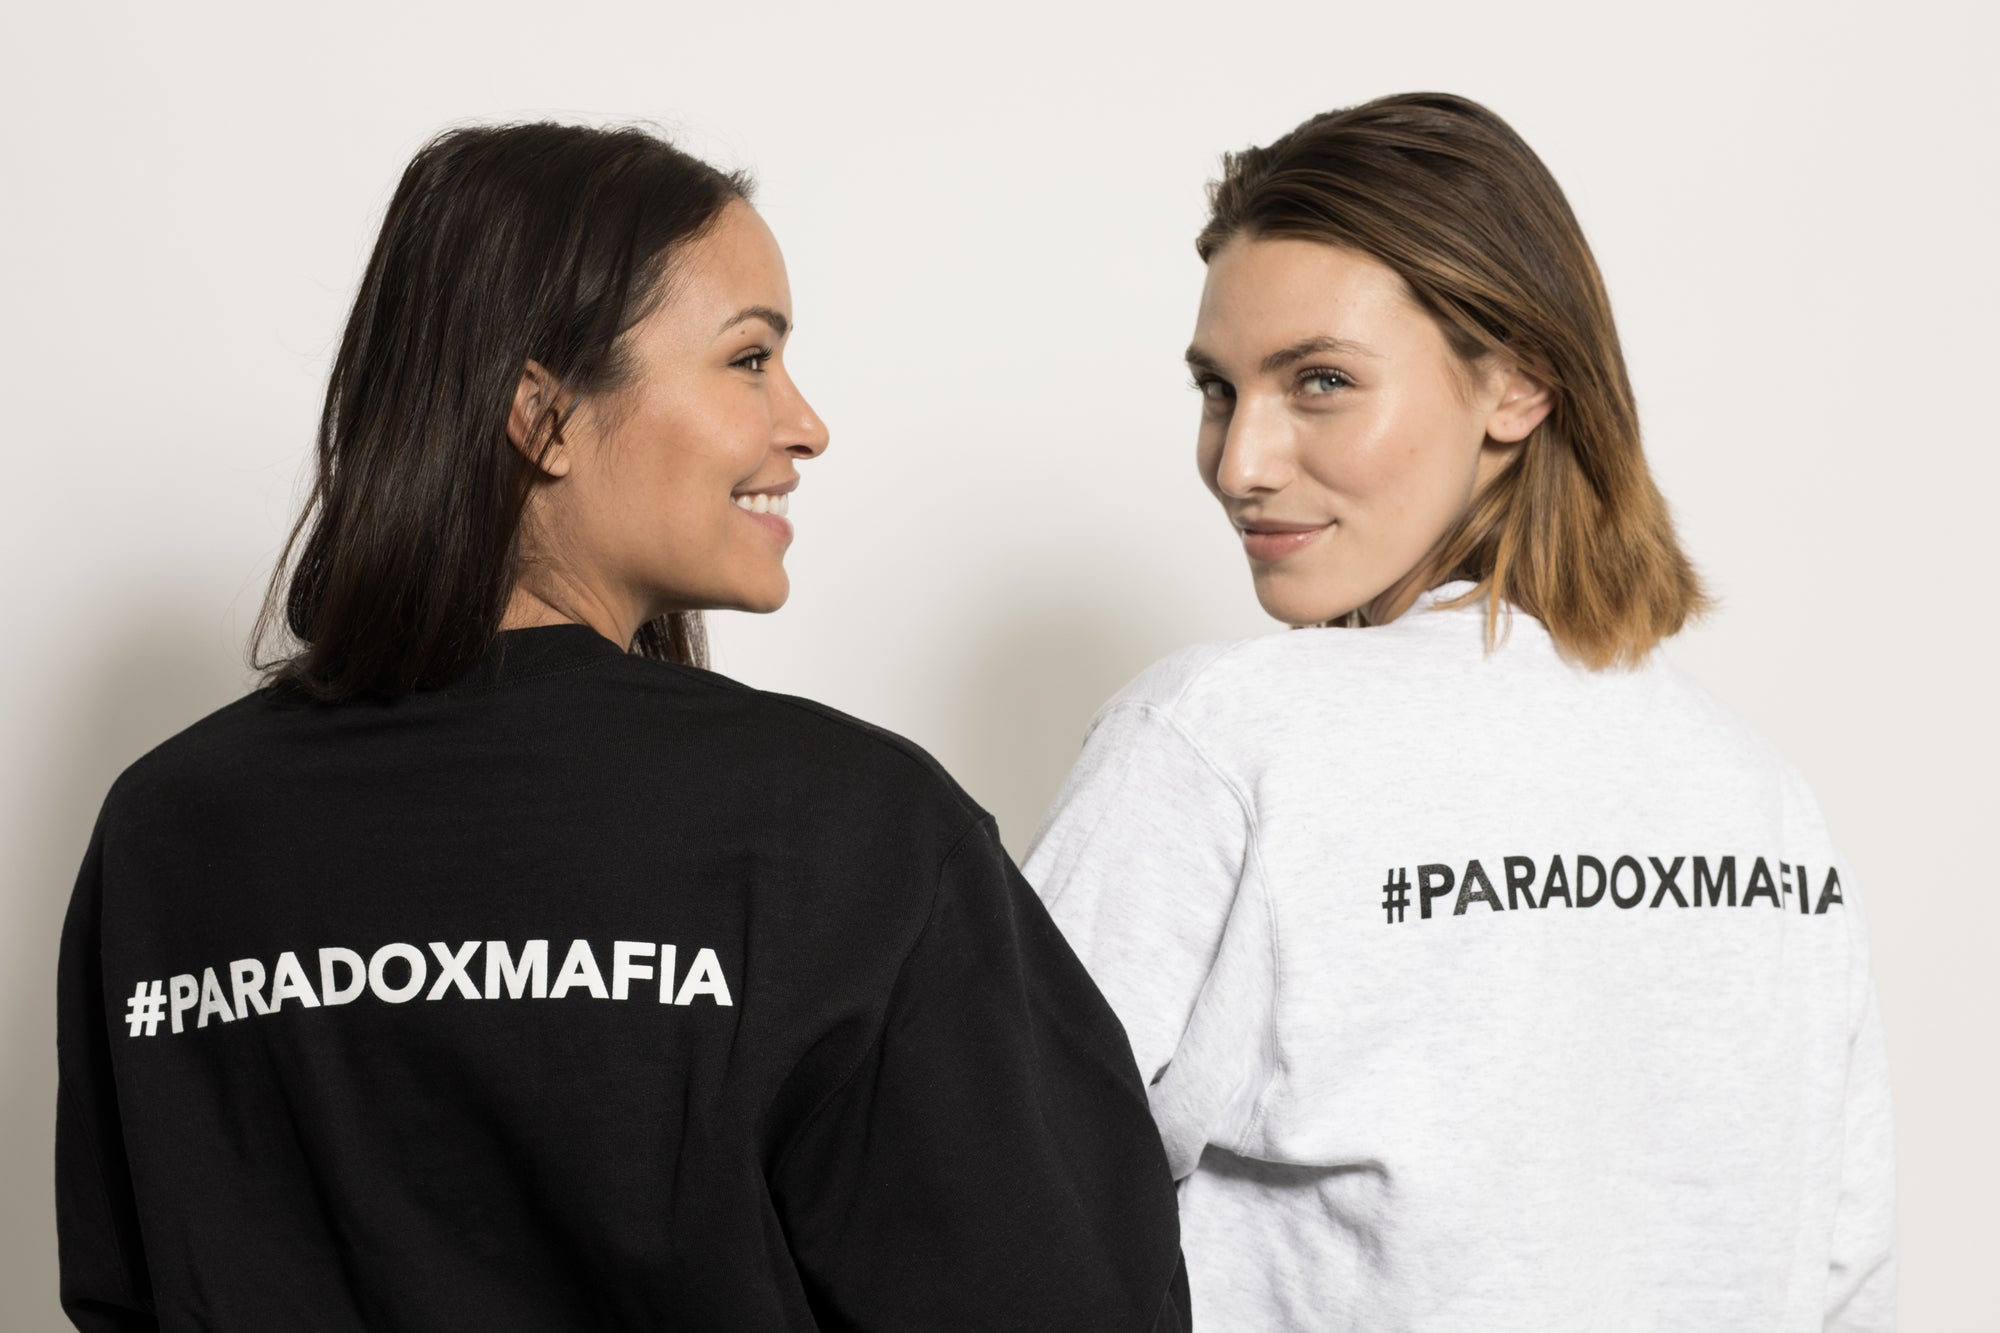 PARADOX BEAUTY STARTUP TEAM IN OFFICE - #PARADOXMAFIA